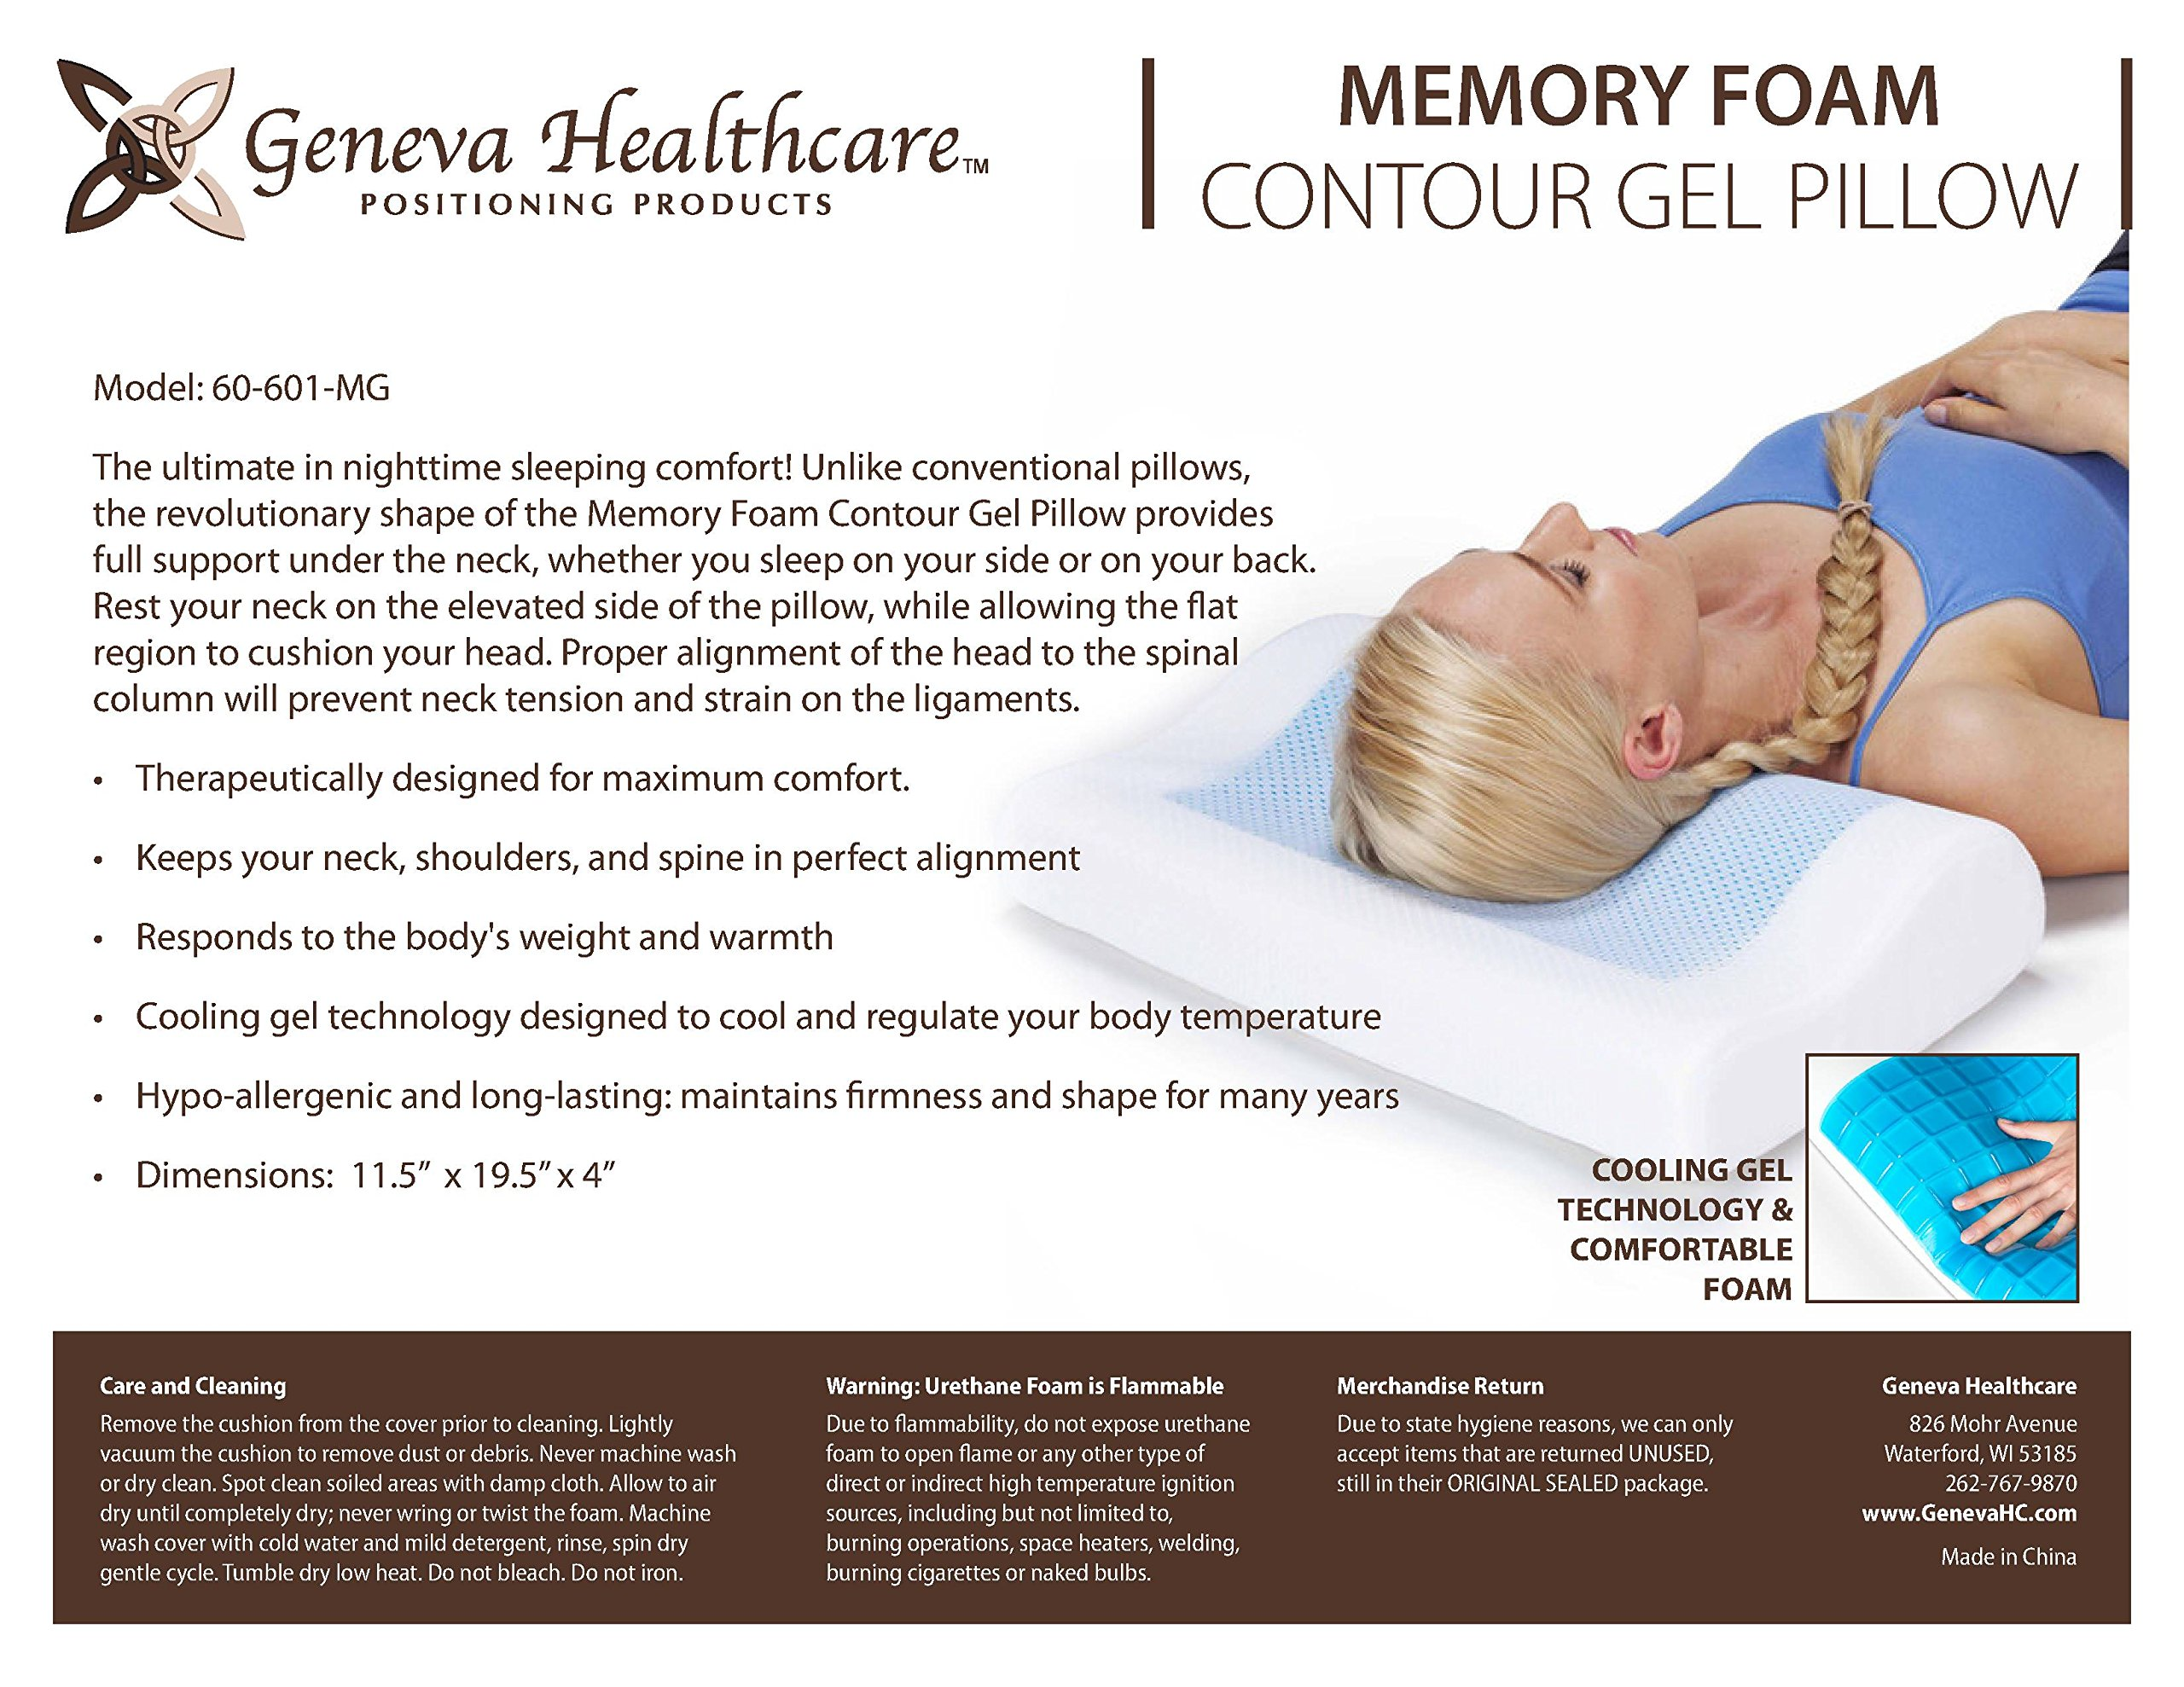 Geneva Healthcare Memory Foam Contour Pillow with Gel Pad - 4'' x 11.5'' x 19.5'' - 1/EA